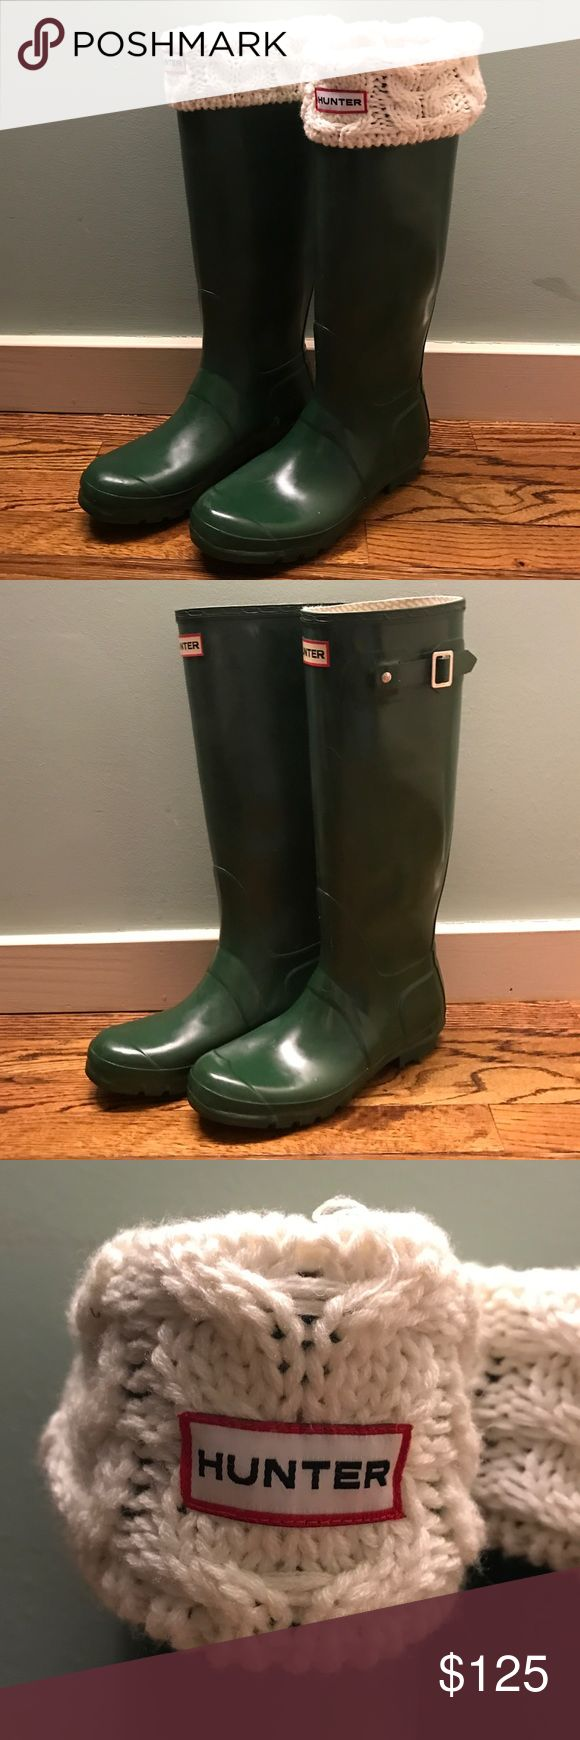 Original Tall Hunter Boots The Original Tall boot is handcrafted from 28 parts and built on the original last for exceptional fit and comfort. Handcrafted, waterproof, textile lining, natural rubber, flawless condition, shows almost NO SIGNS OF WEAR!  (Will combine with the boot socks in my other listing for a discount!) Hunter Boots Shoes Winter & Rain Boots